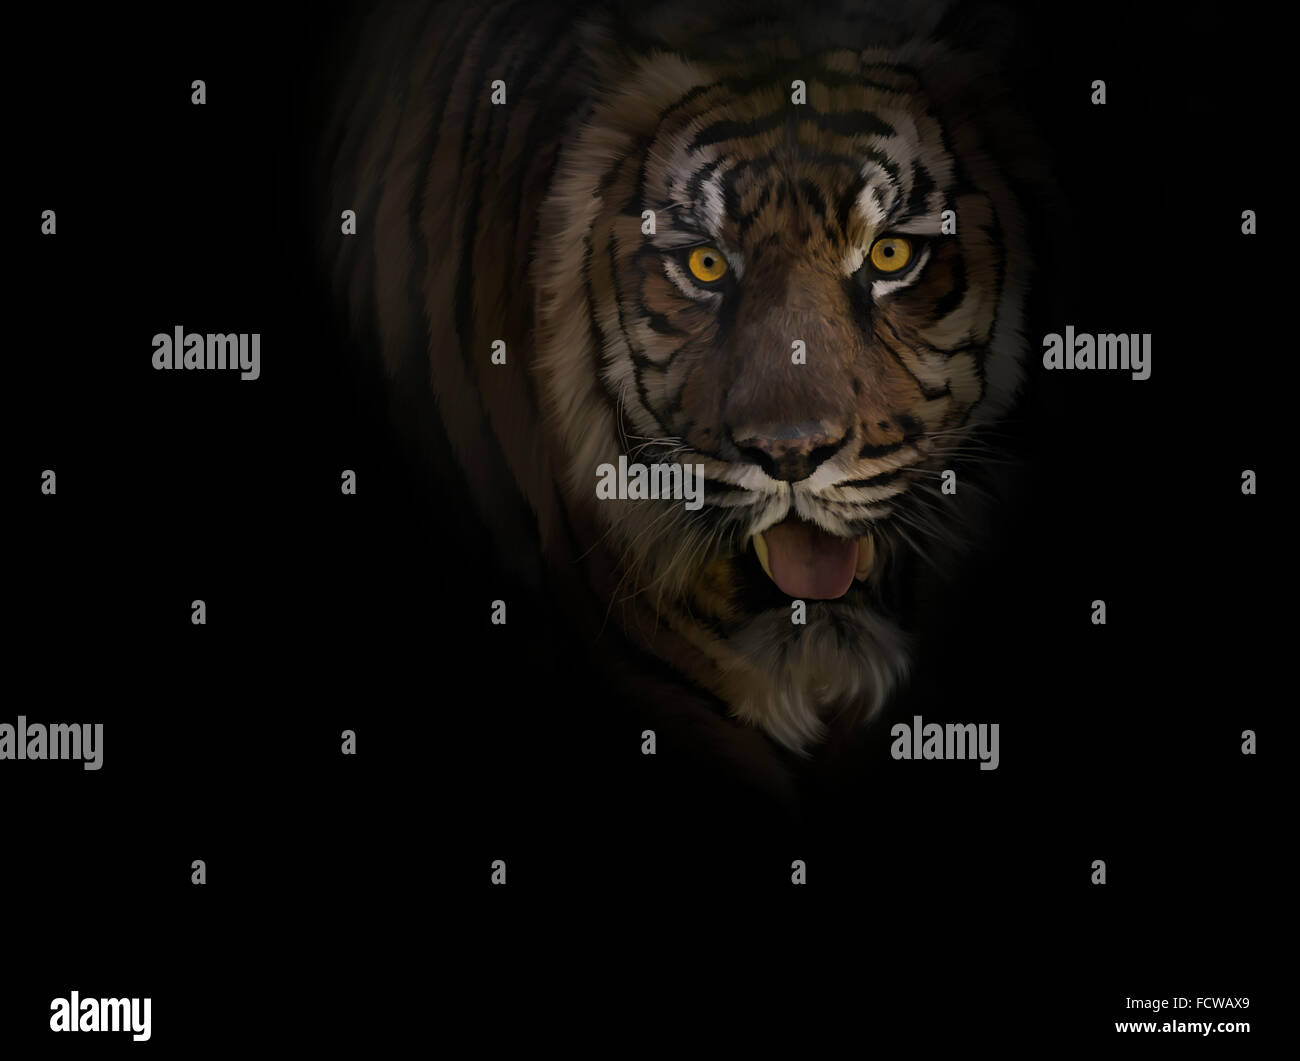 Digital Painting of Tiger ,Close Up - Stock Image